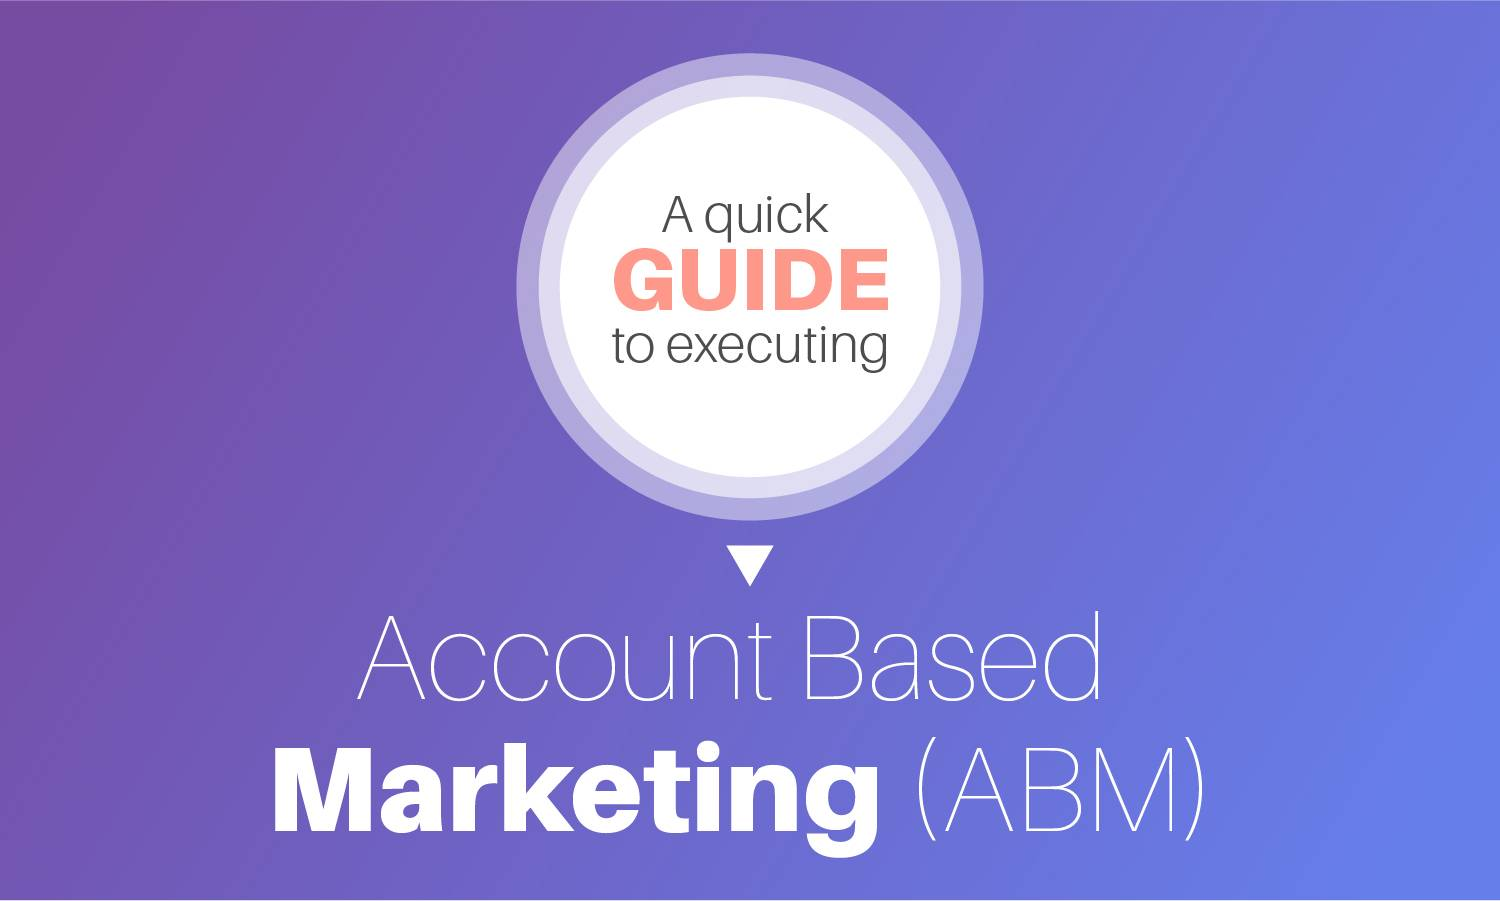 A quick guide to executing Account Based Marketing (ABM)